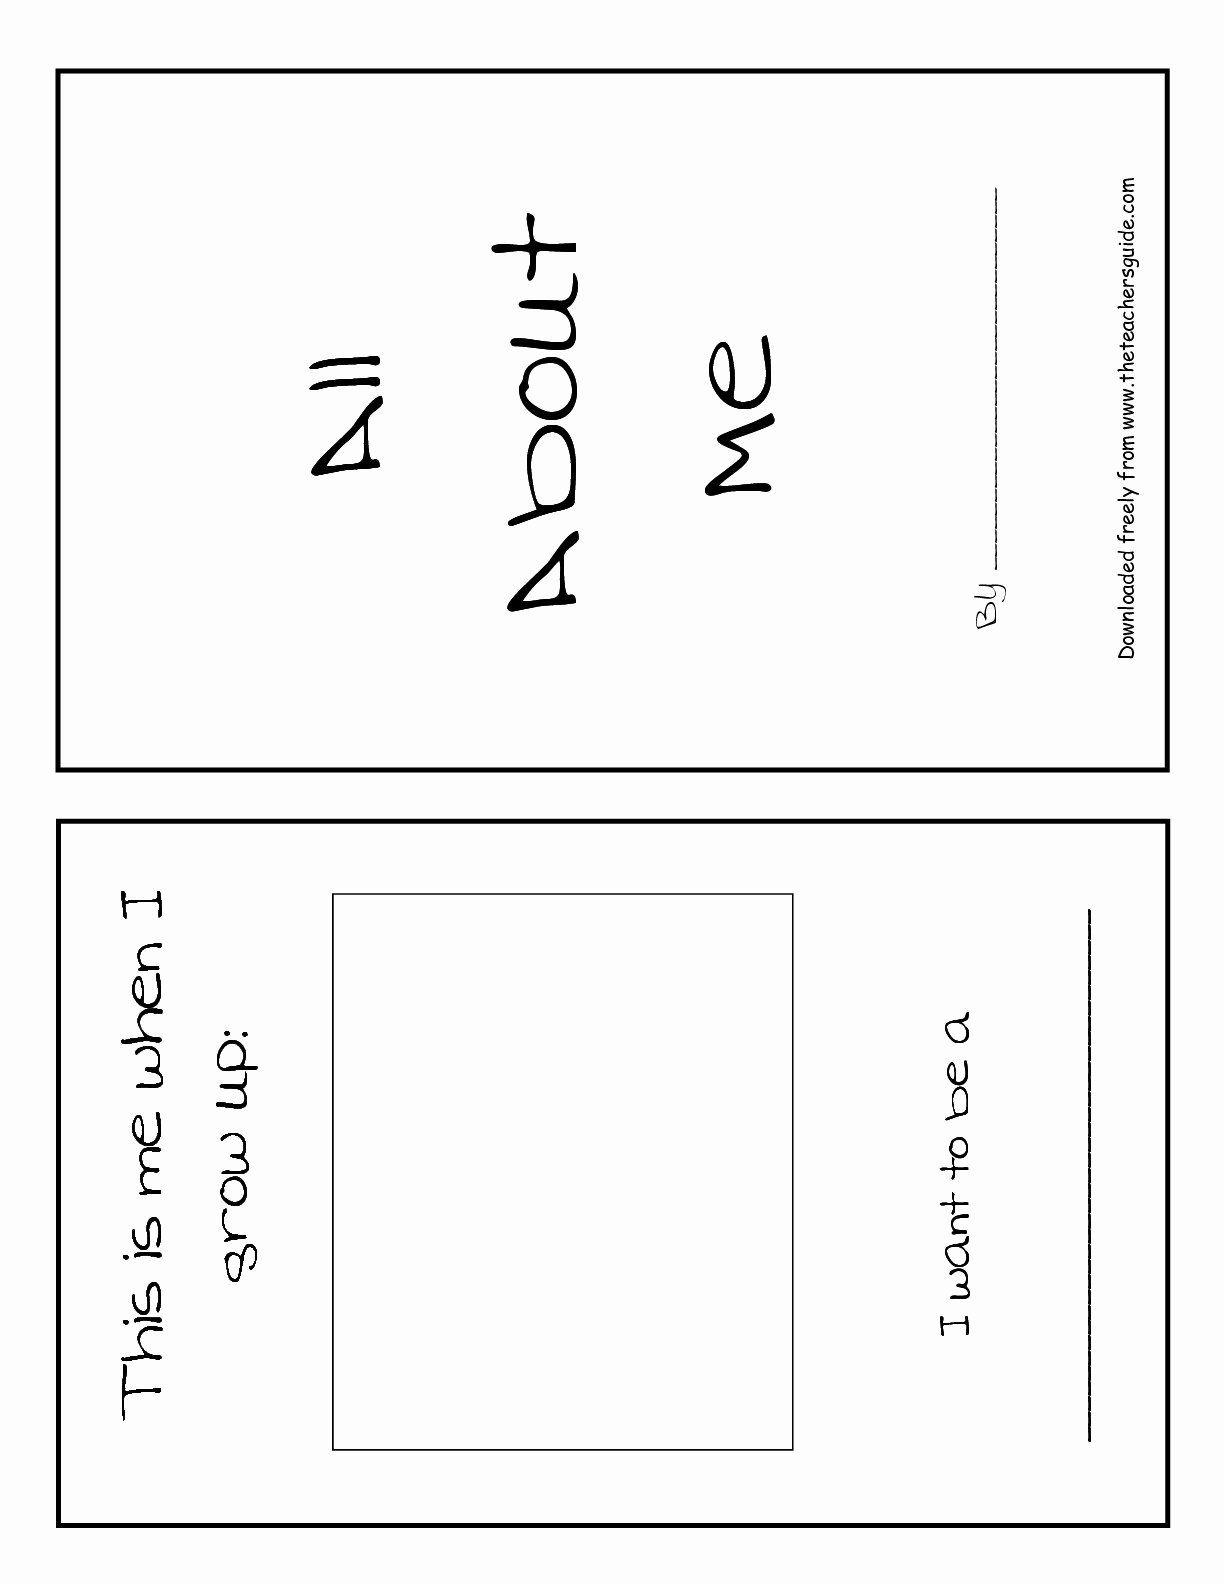 All About Me Printable Worksheet Fresh the Frogs and the Flutterbyes All  About Me Free Printable – Chessm… in 2020   Free math worksheets [ 1584 x 1224 Pixel ]